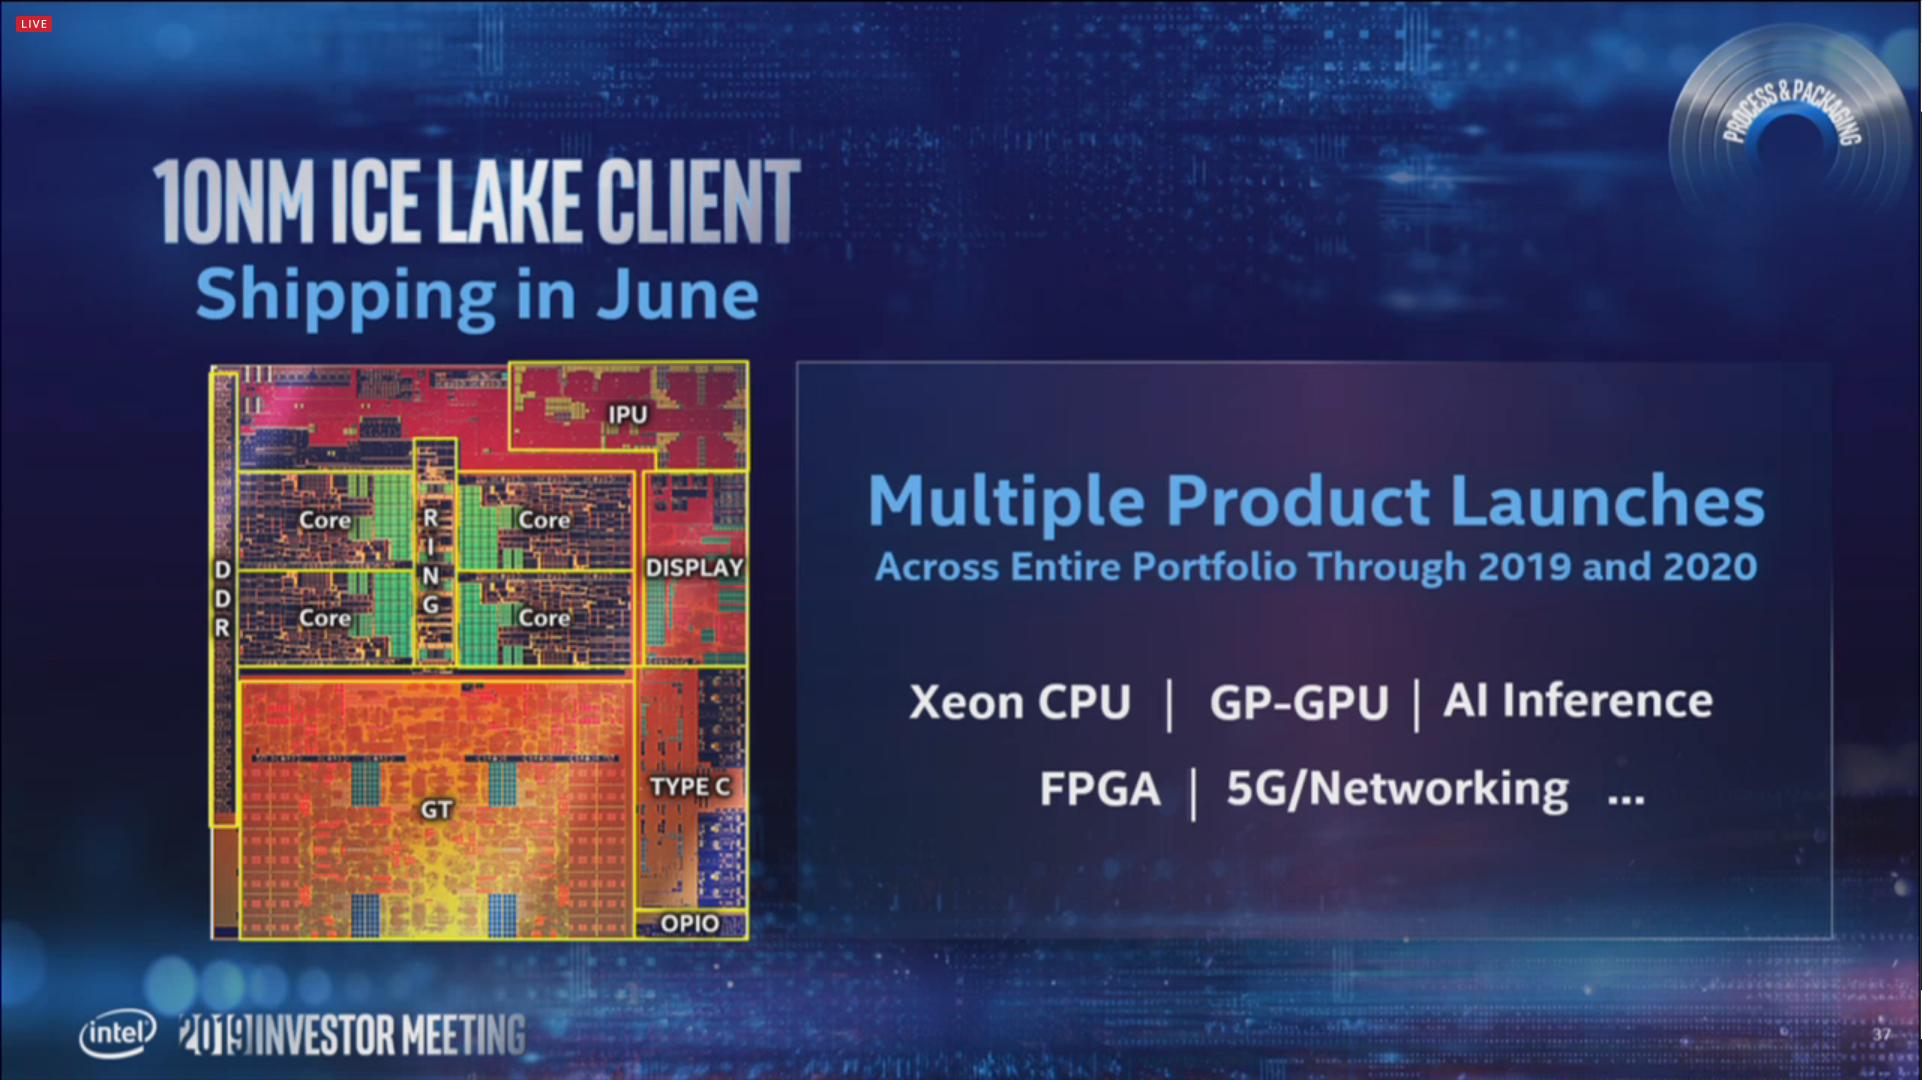 Intel to launch 7nm chip products in 2021